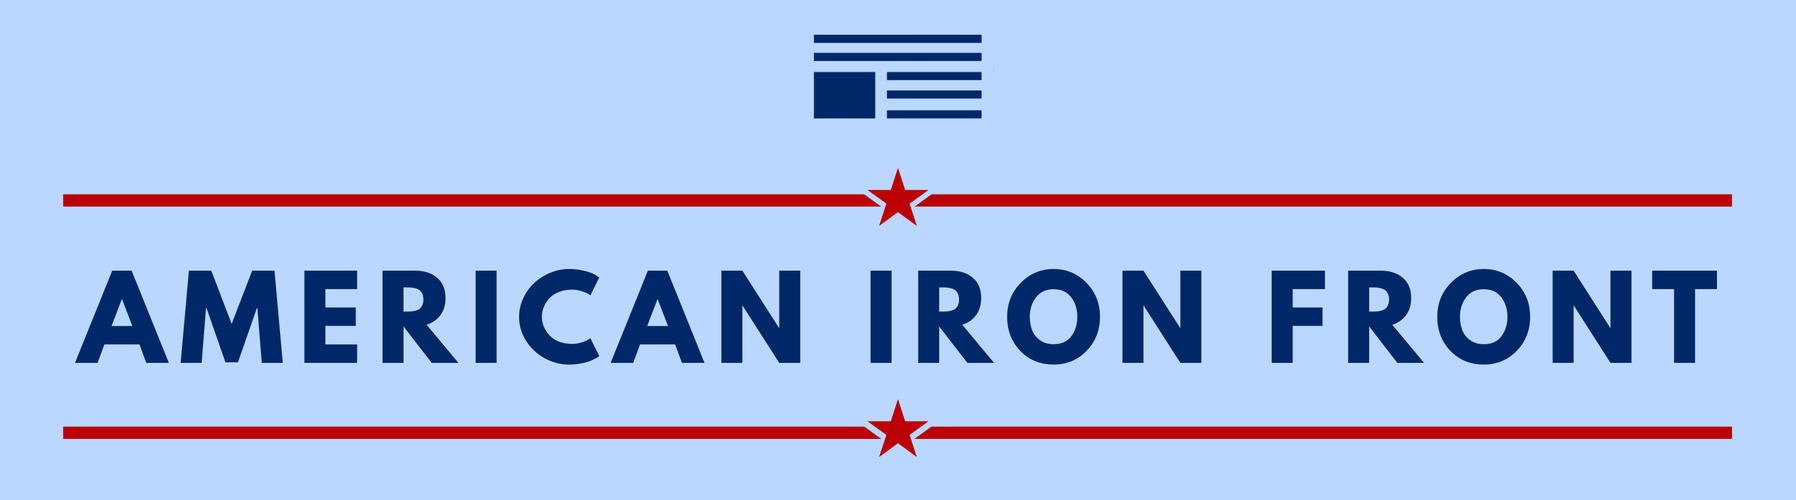 American Iron Front